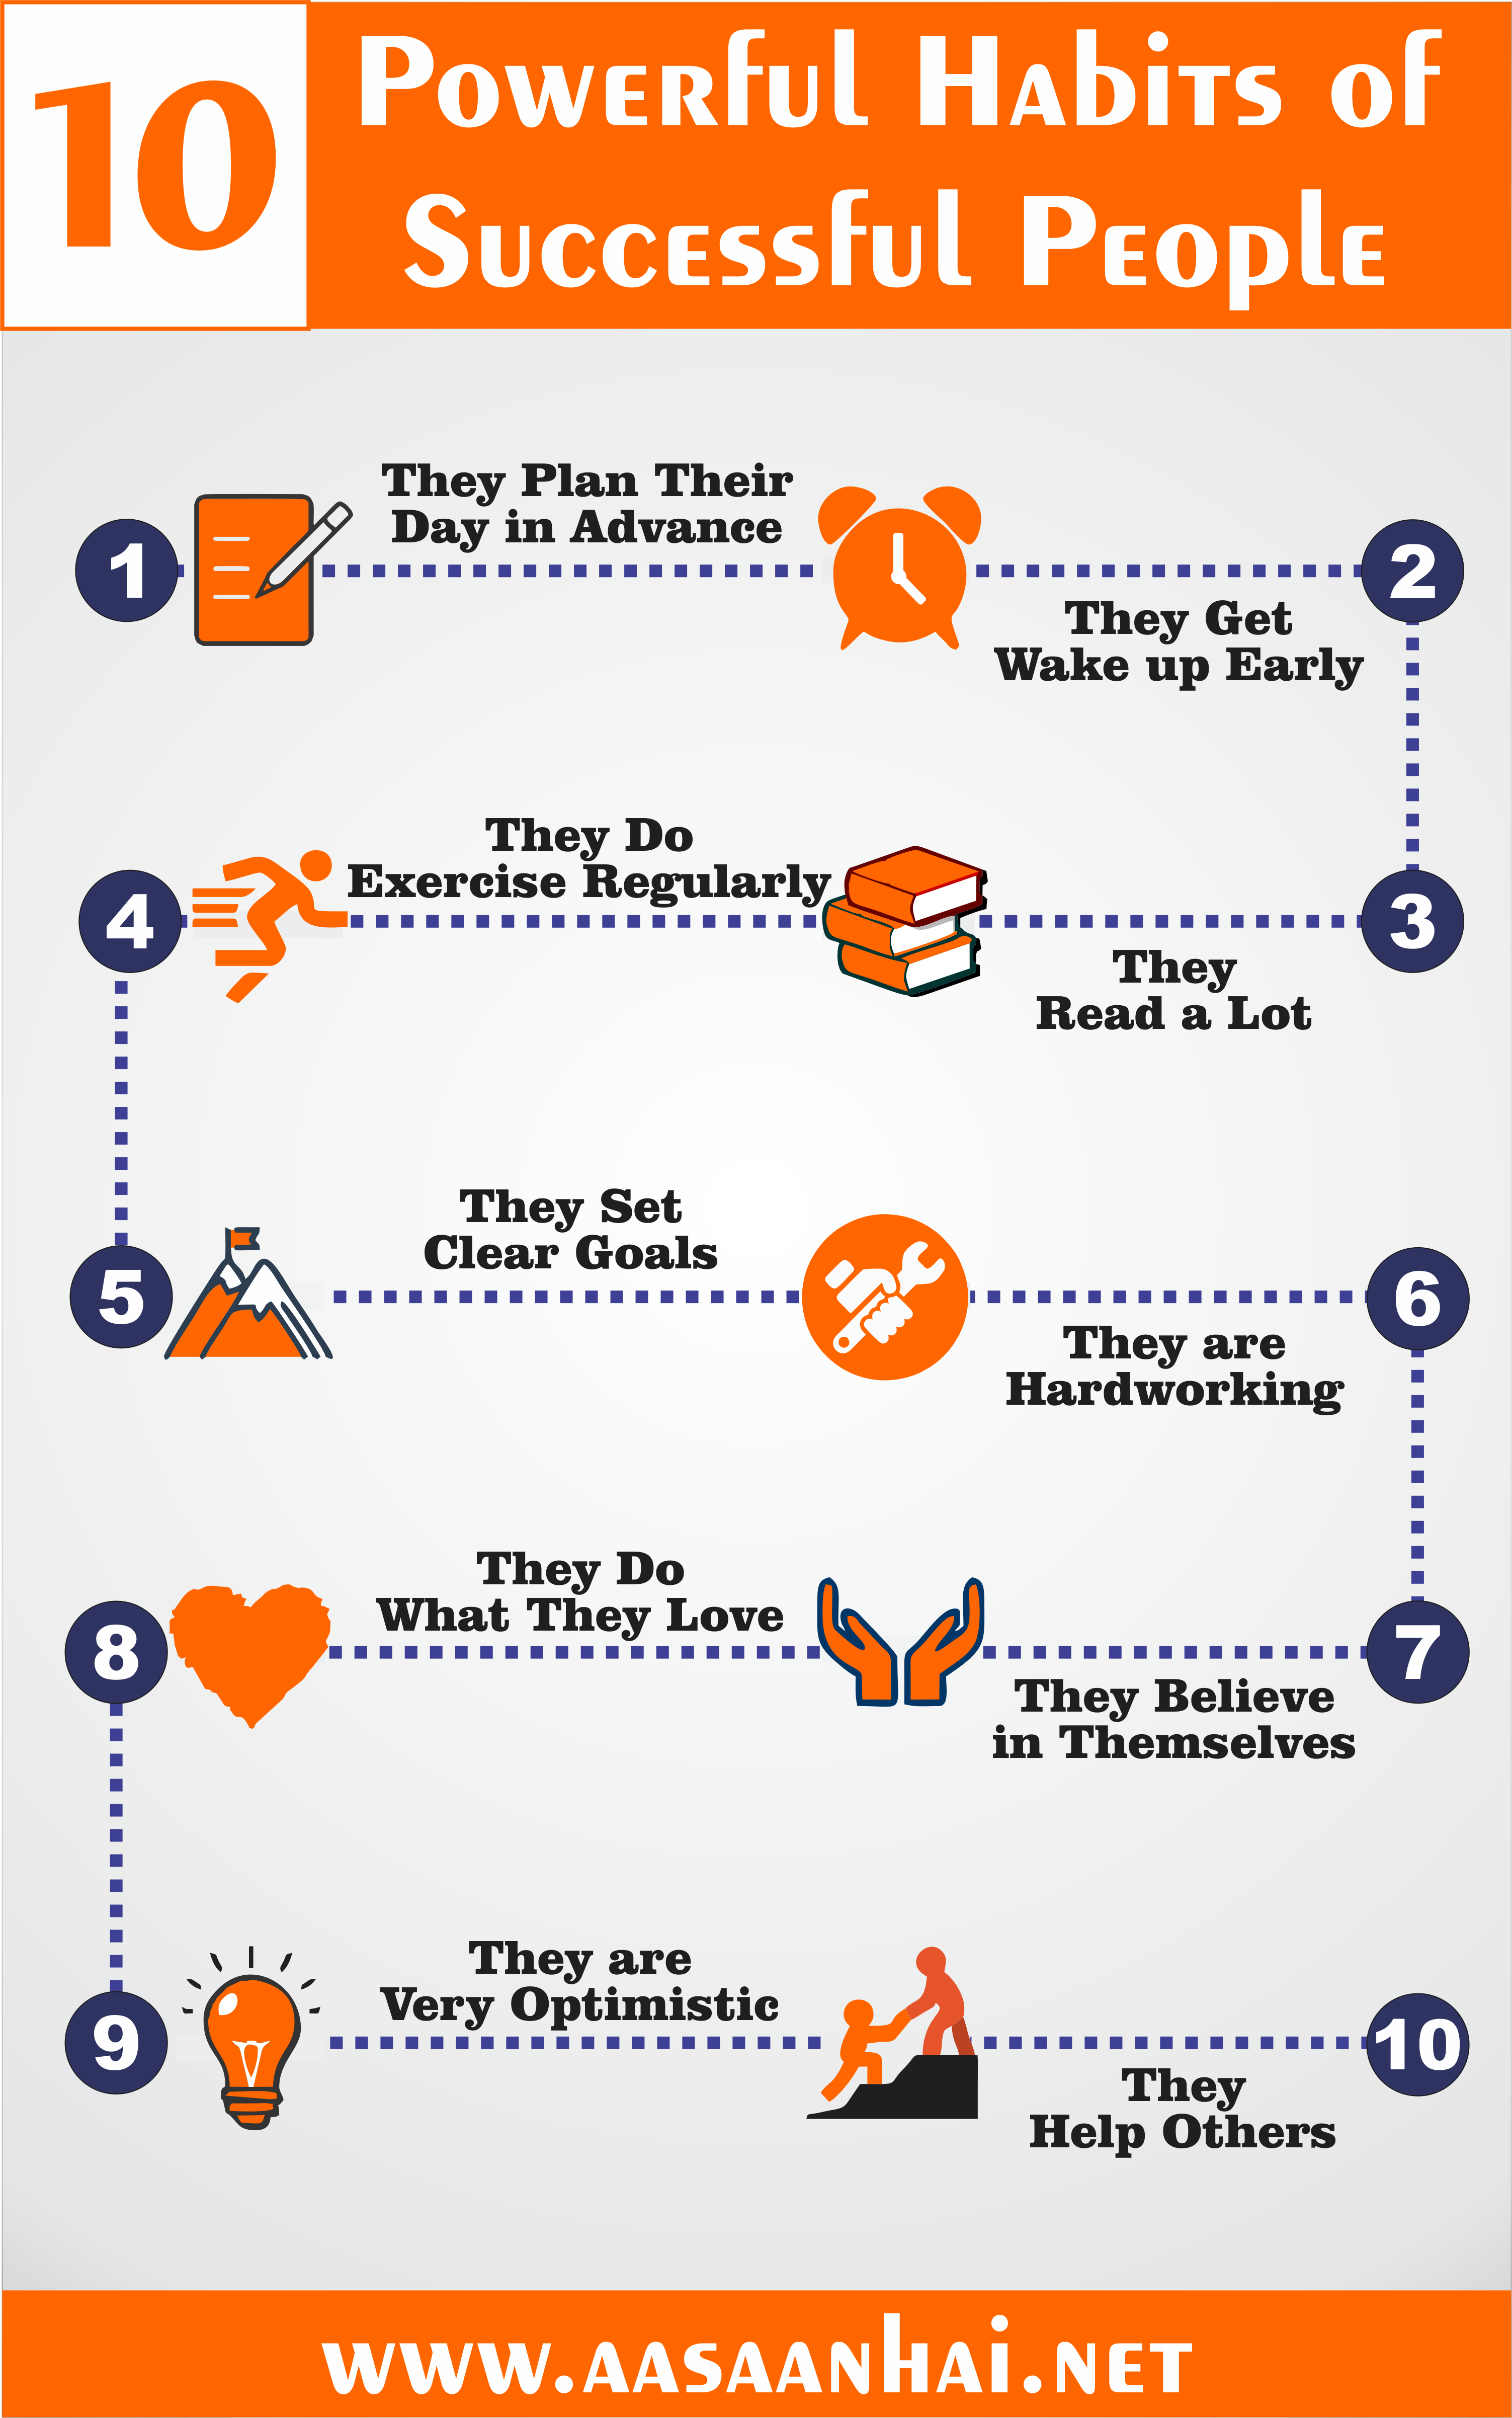 10 Powerful Habits Of Successful People